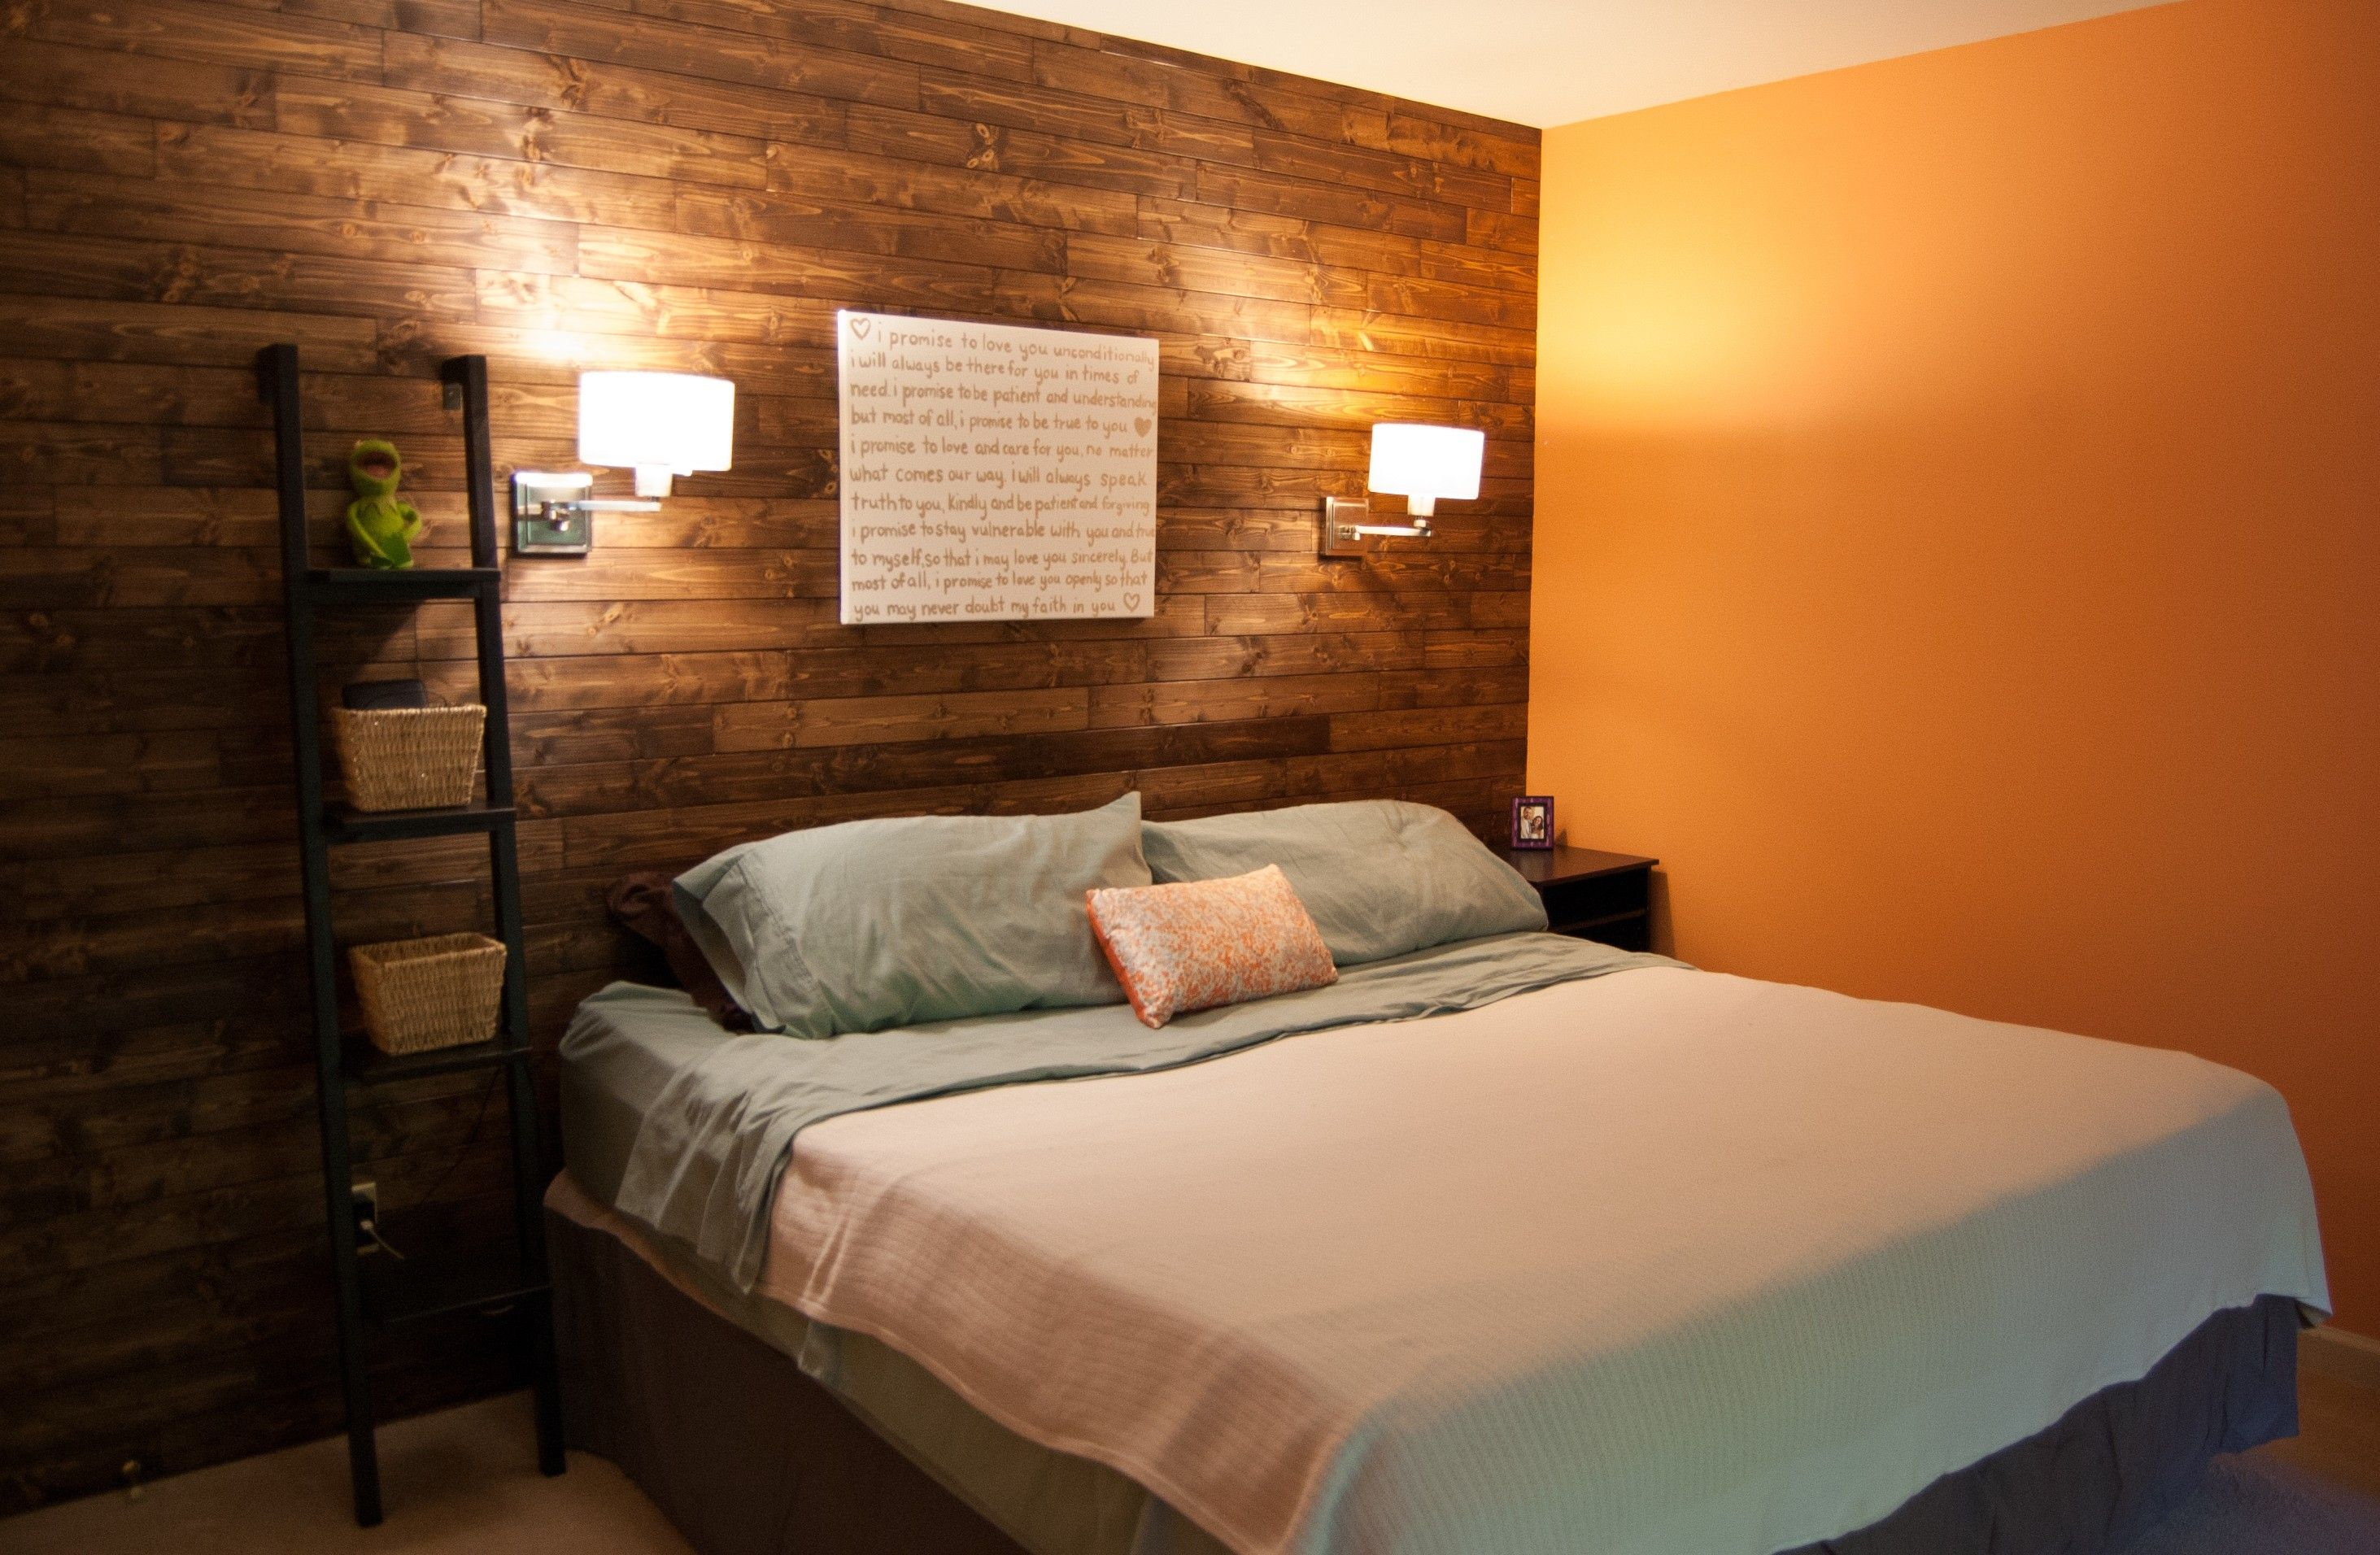 Fancy Glass Shade Wall Bedroom Reading Light On Rustic Stone Wall